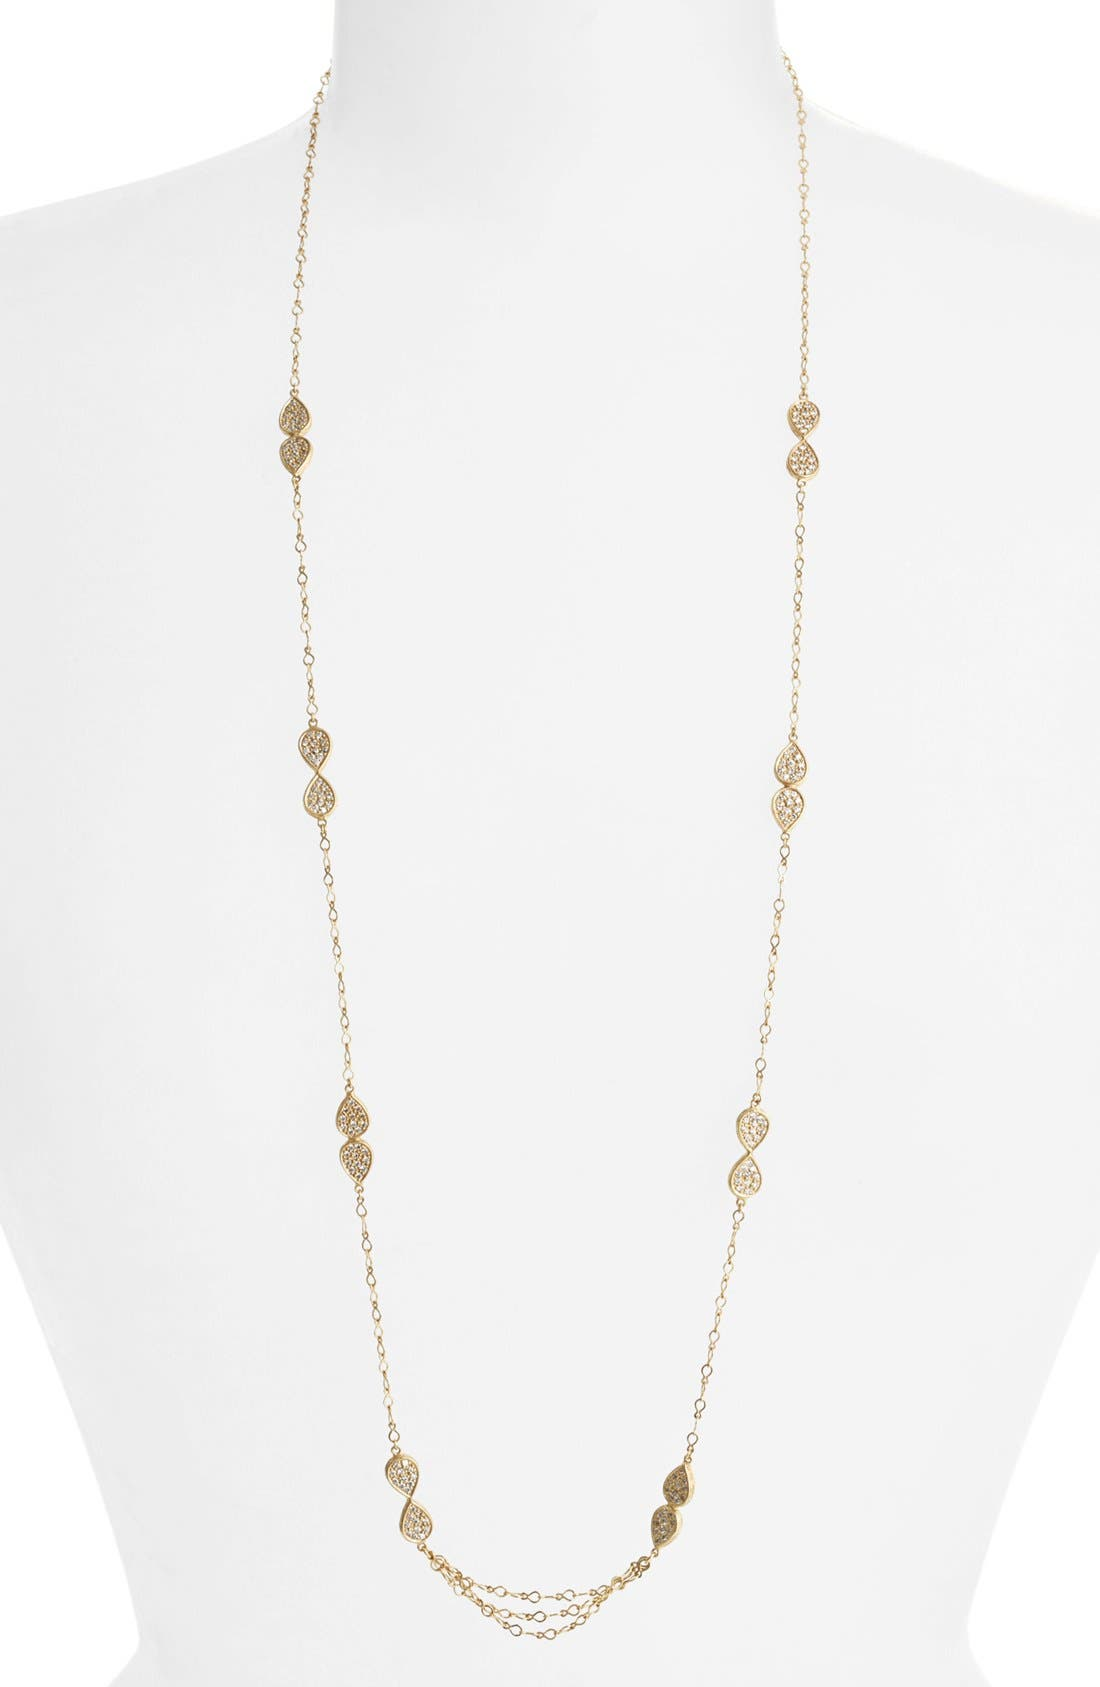 Main Image - Melinda Maria 'June - Leaf' Long Station Necklace